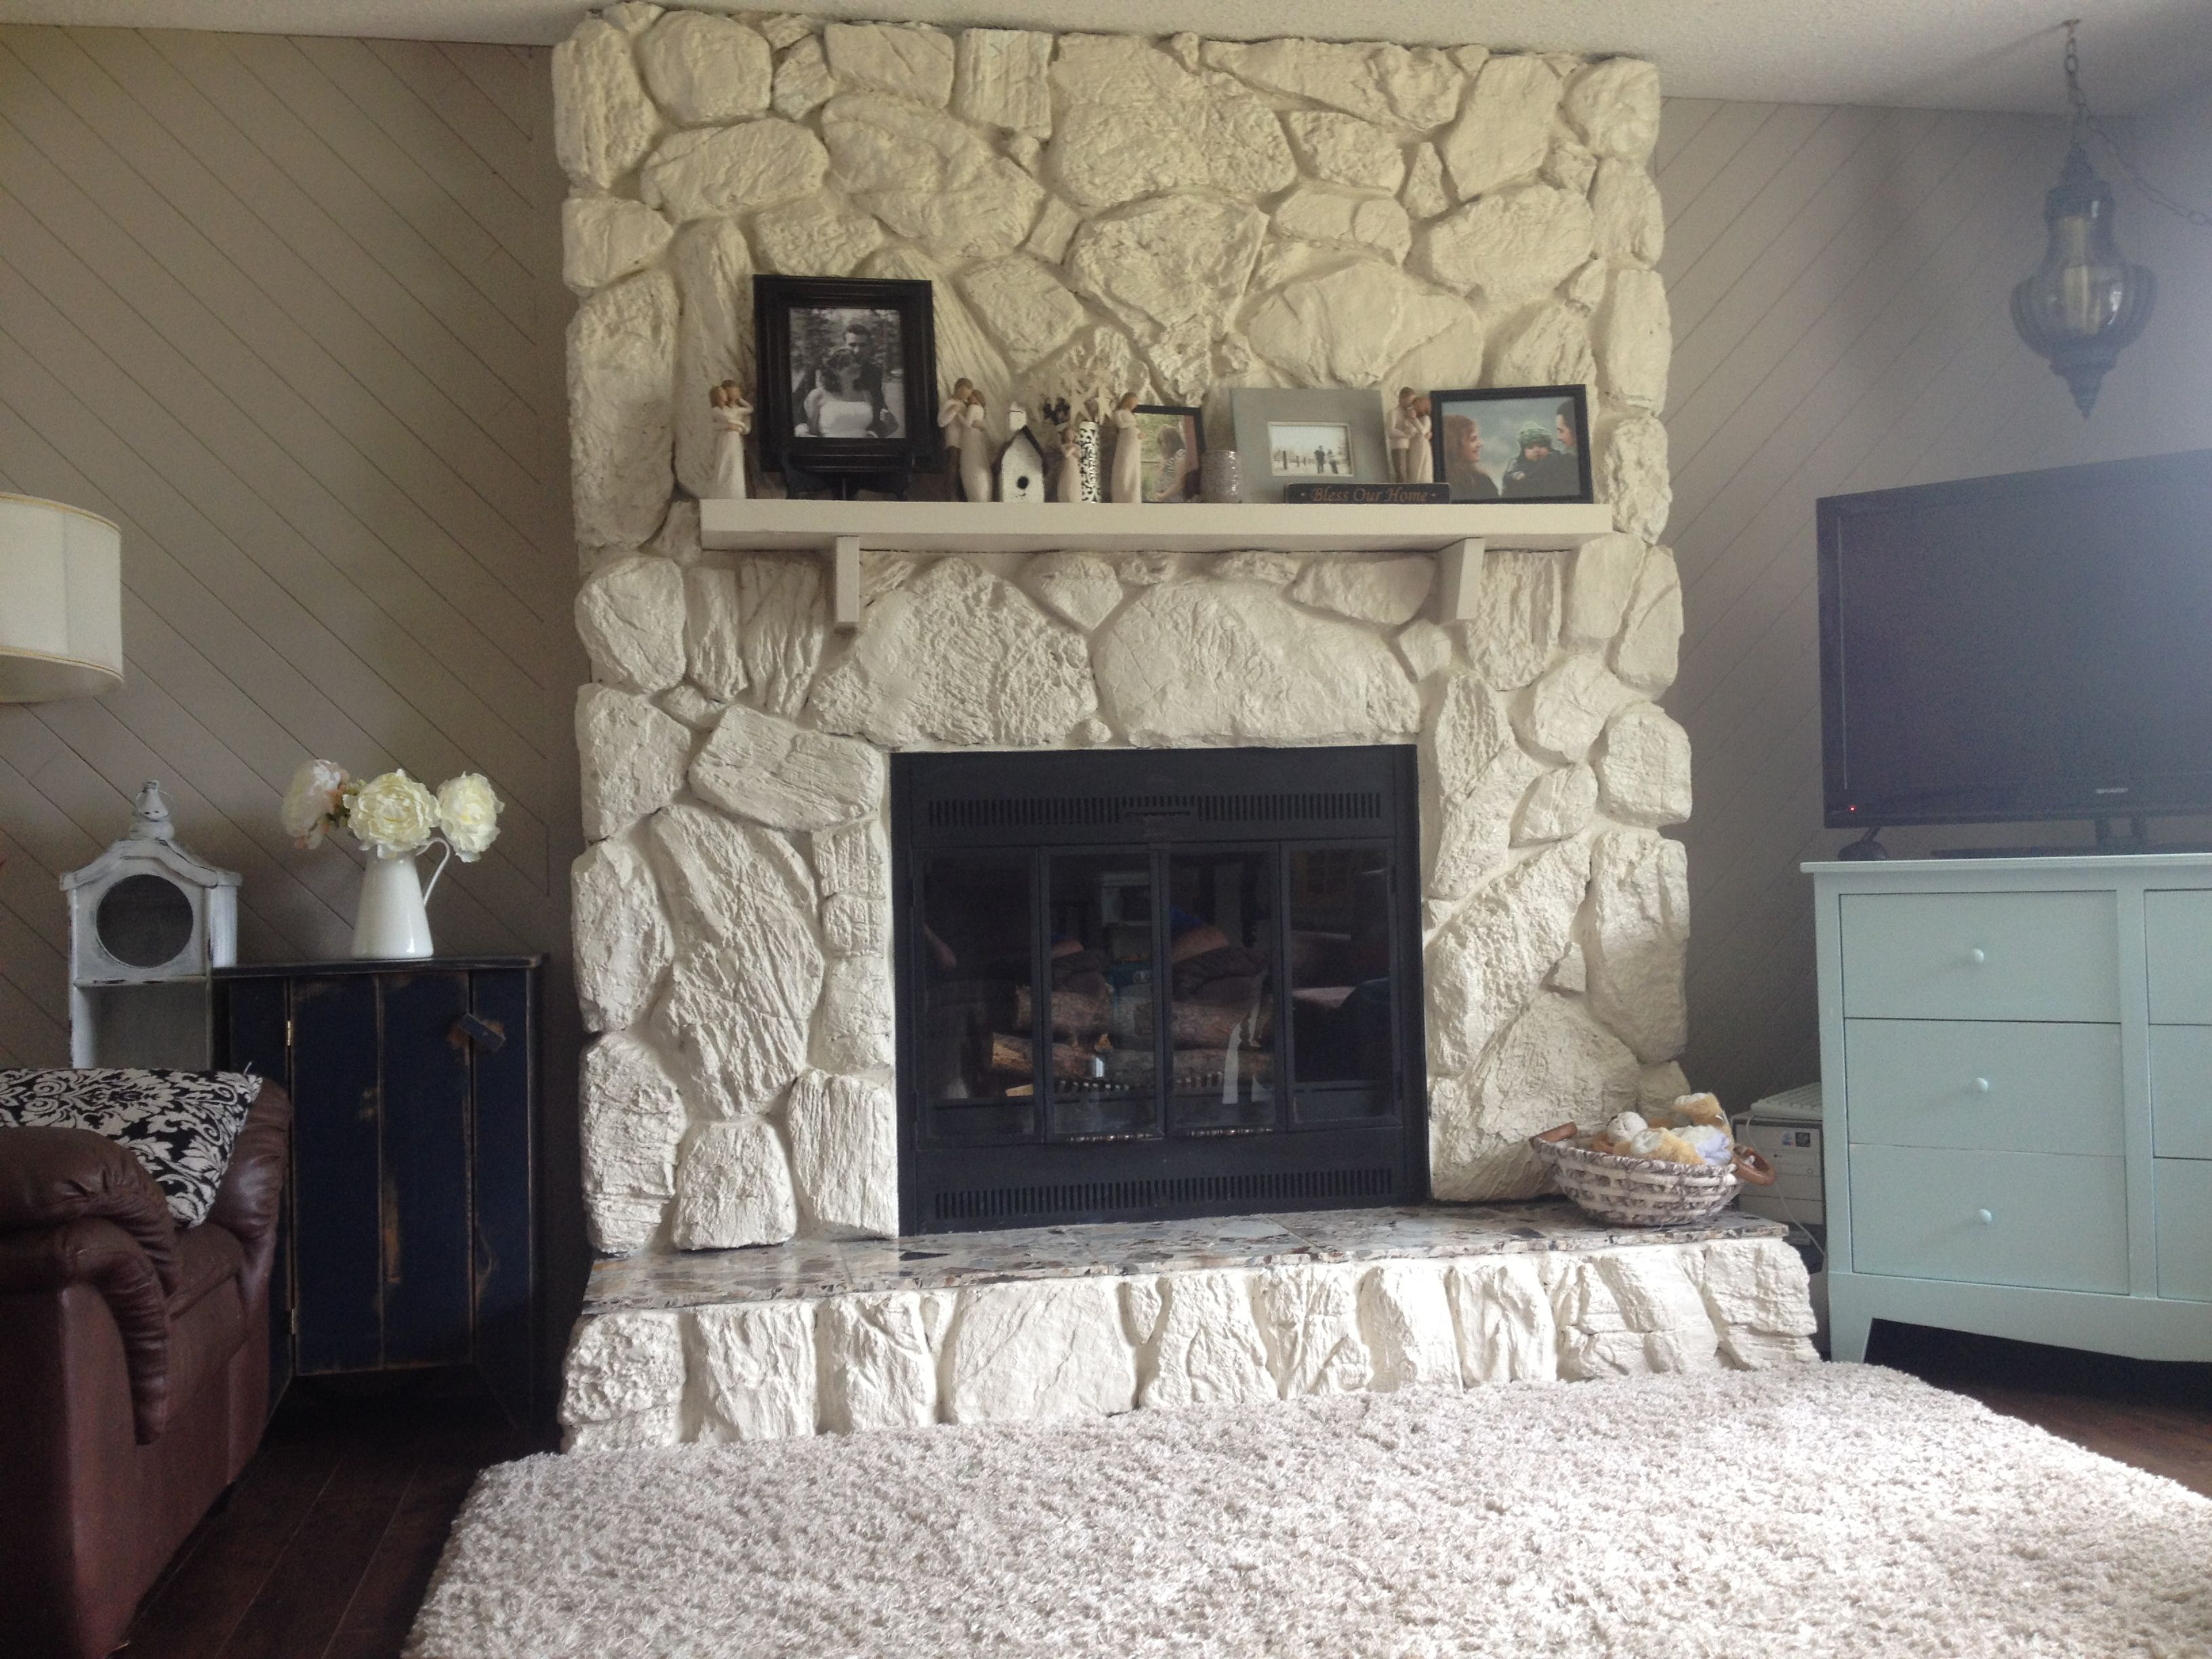 Painted Rock Fireplace Huge Improvement Makes The Room Feel So Light And Airy Compared To Before